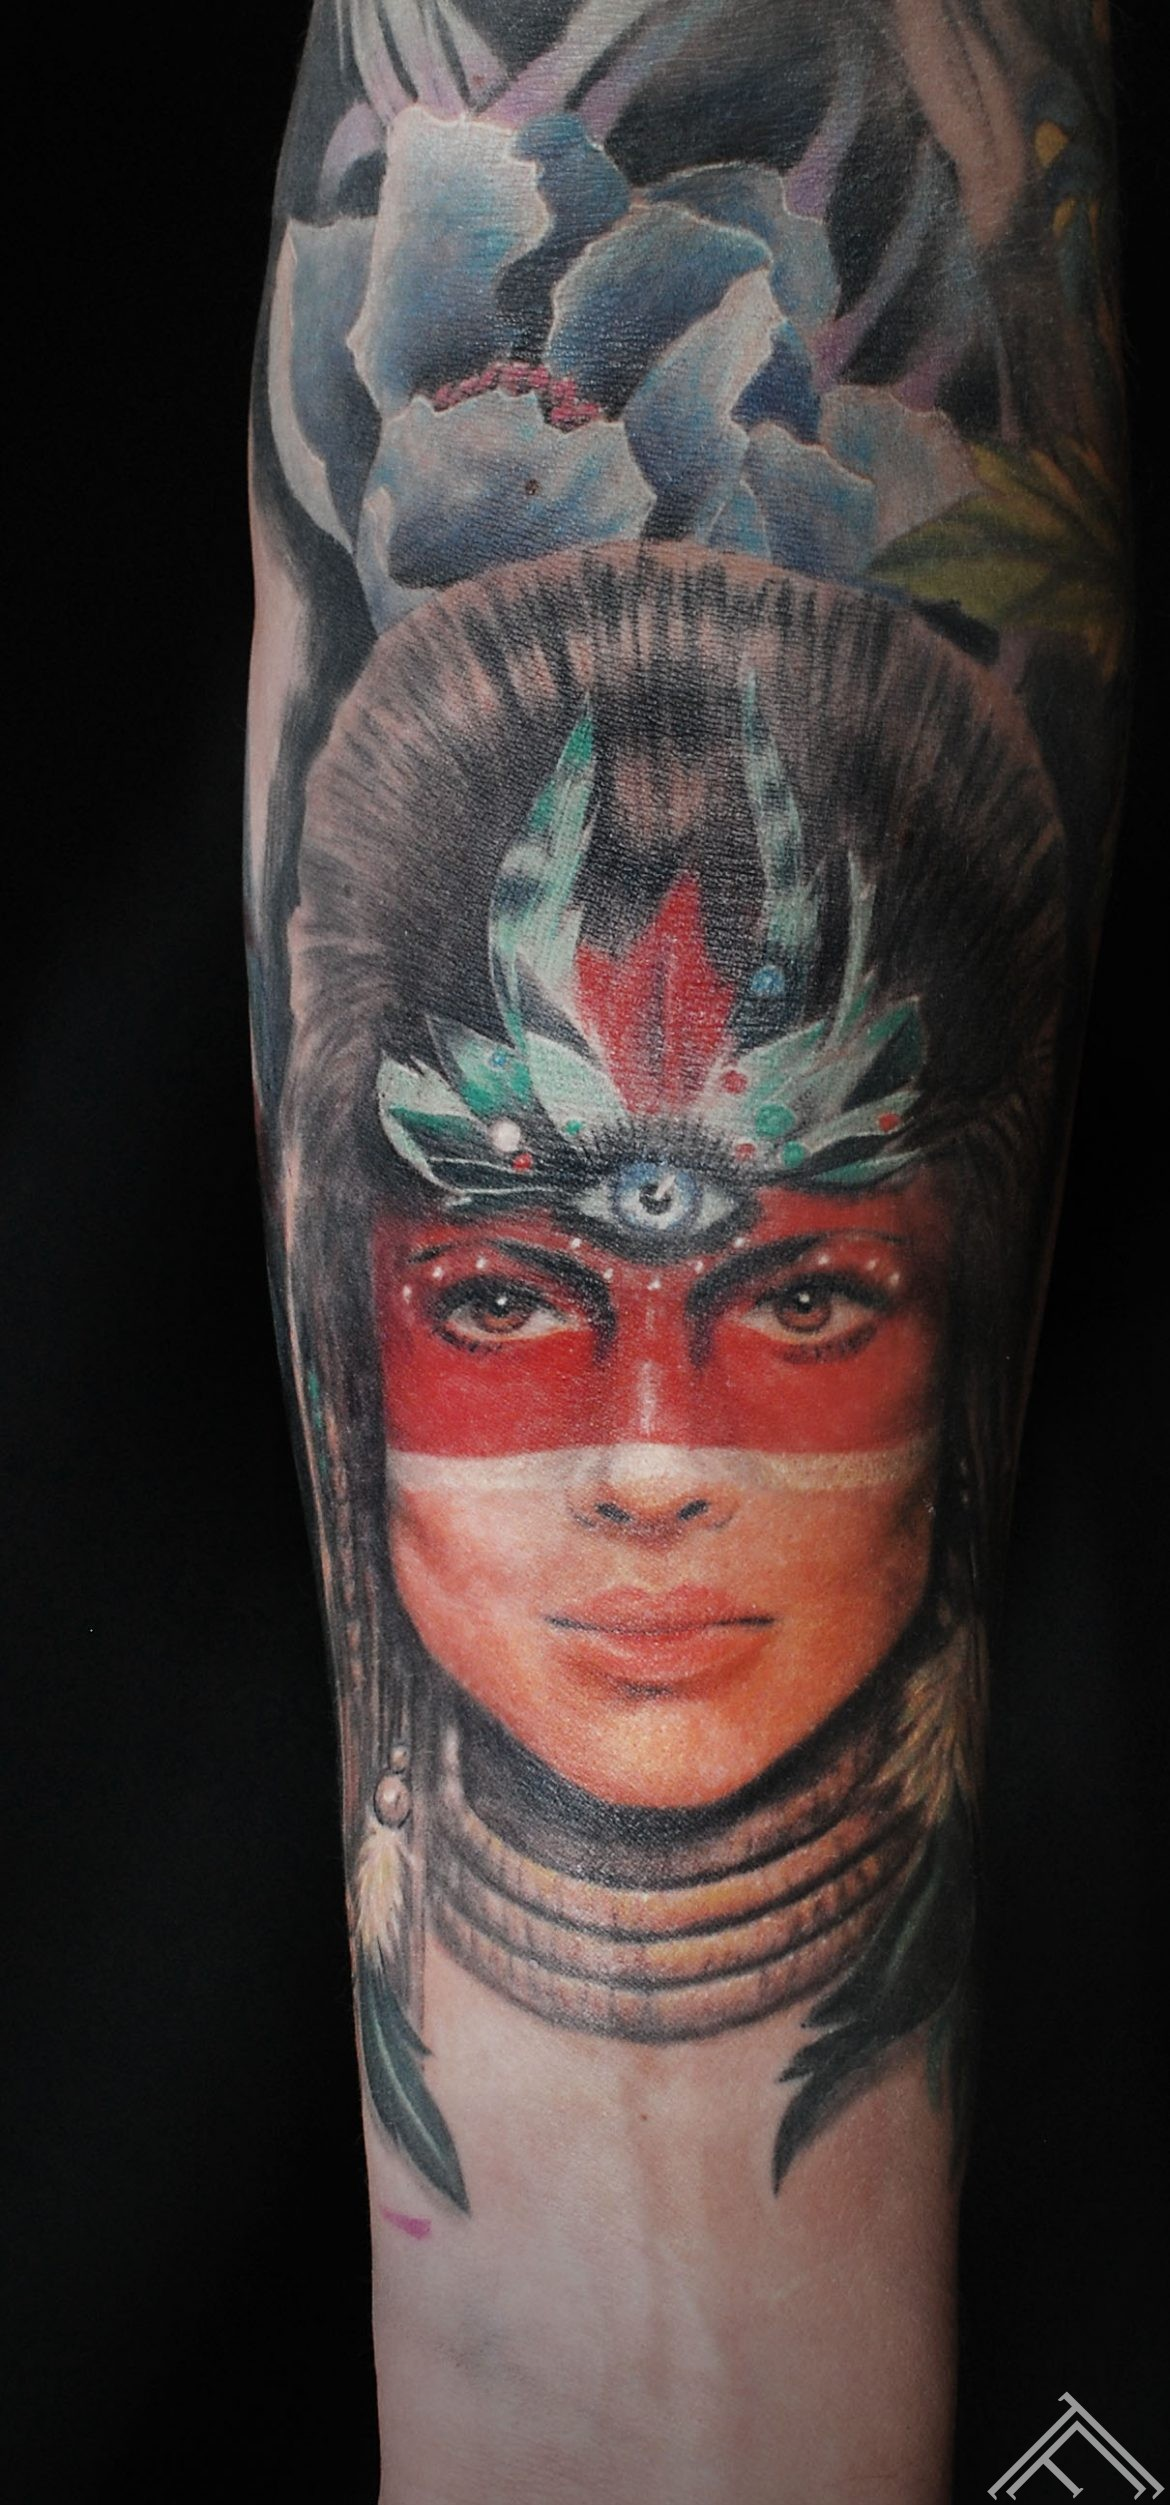 janisanderson-tattoo-tattoofrequency-riga-woman-portrait-tetovejums